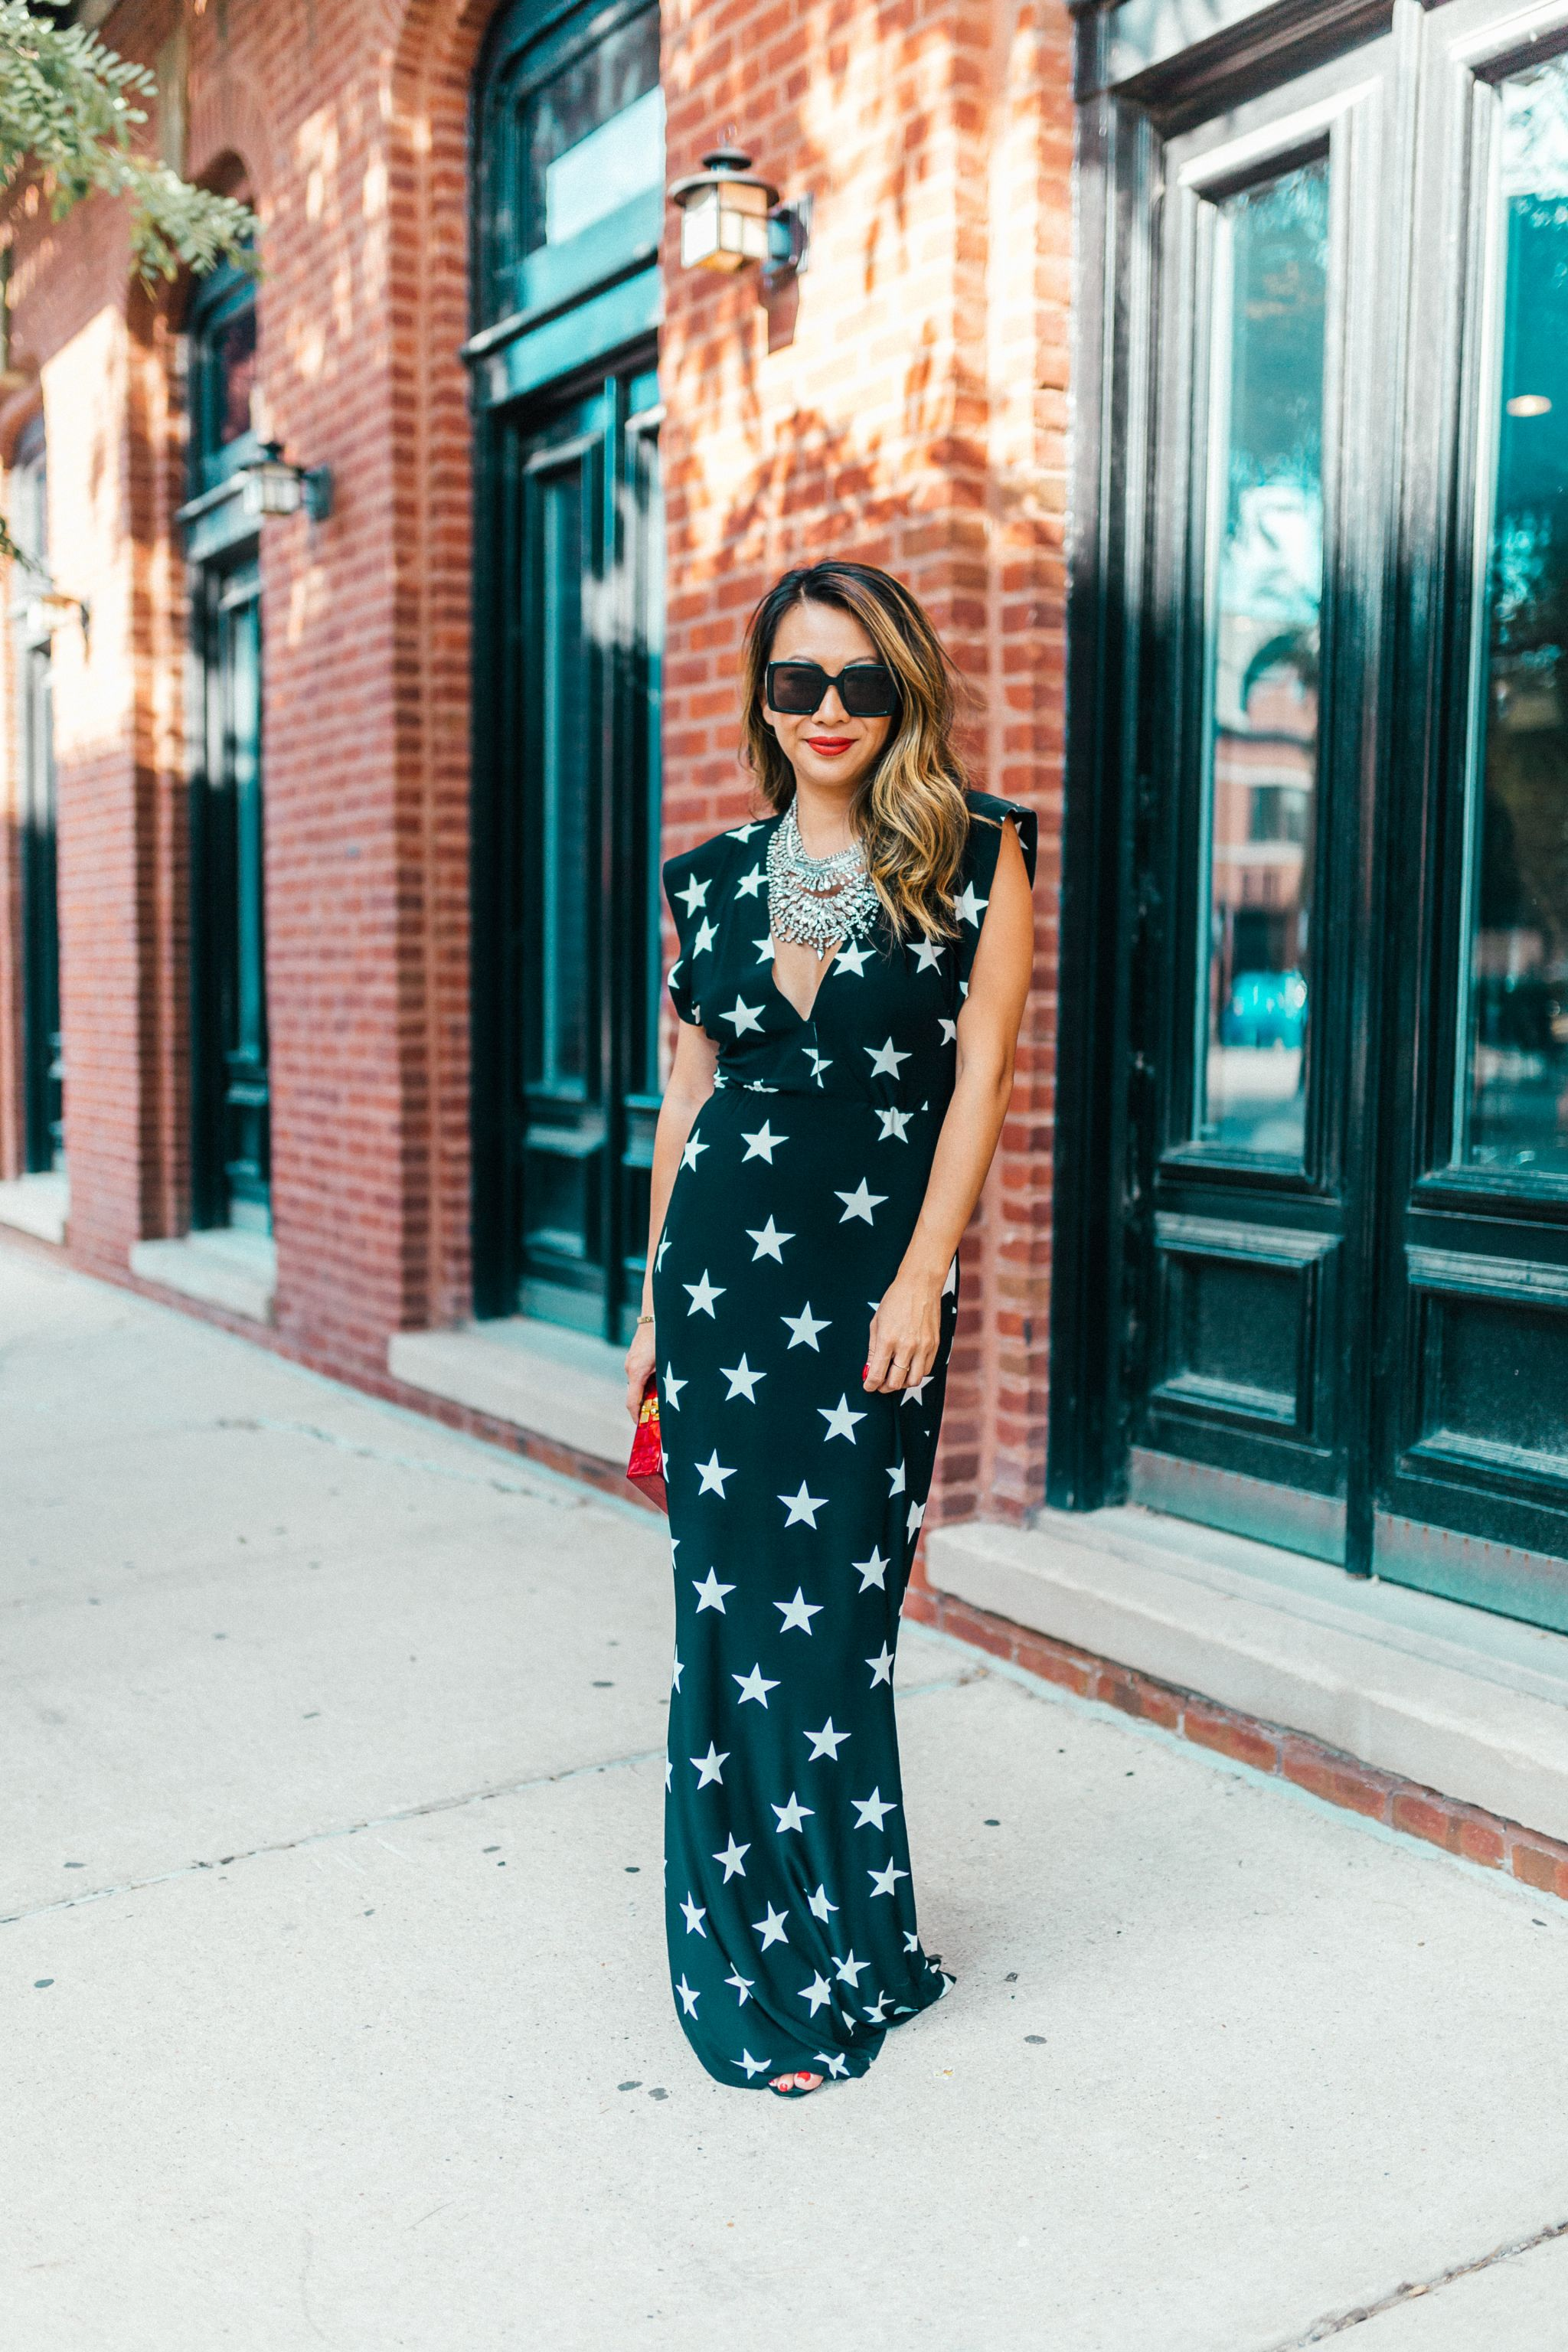 Norma Kamali Star Dress, V Neck Star Jersey Dress, Star Print Maxi Dress, what to wear to NYFW for Fall, Best Dress with statement Necklace, How to Wear a Statement Necklace, Jennifer Worman, Chicago Style Blogger